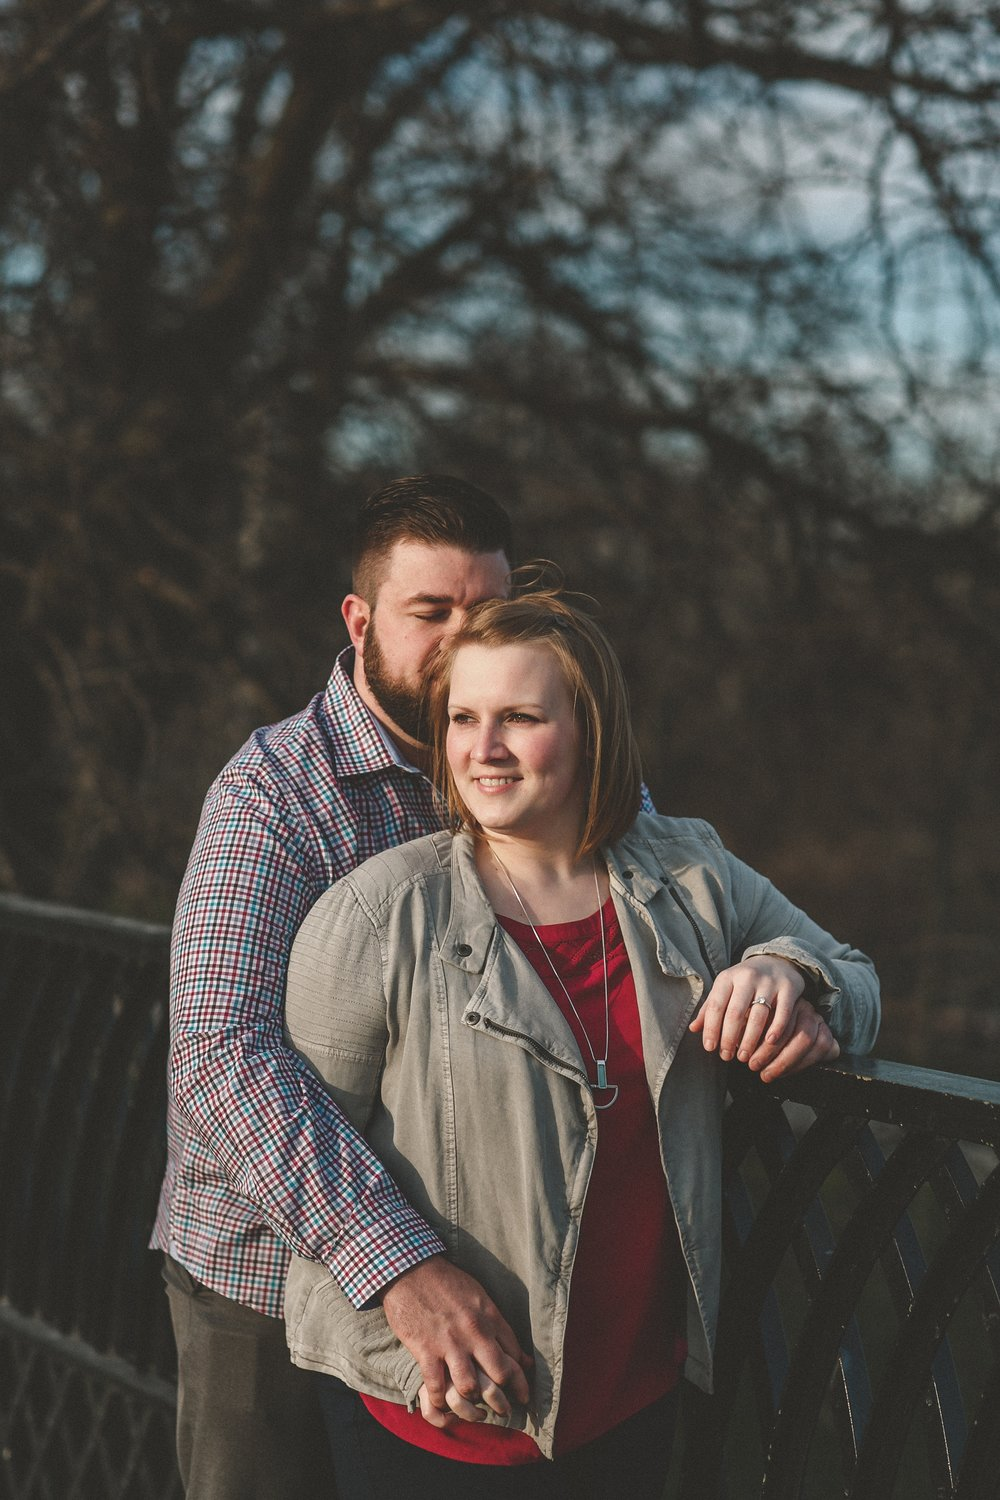 chicago_humboldt_park_north_ave_beach_engagement_photography_0006.jpg